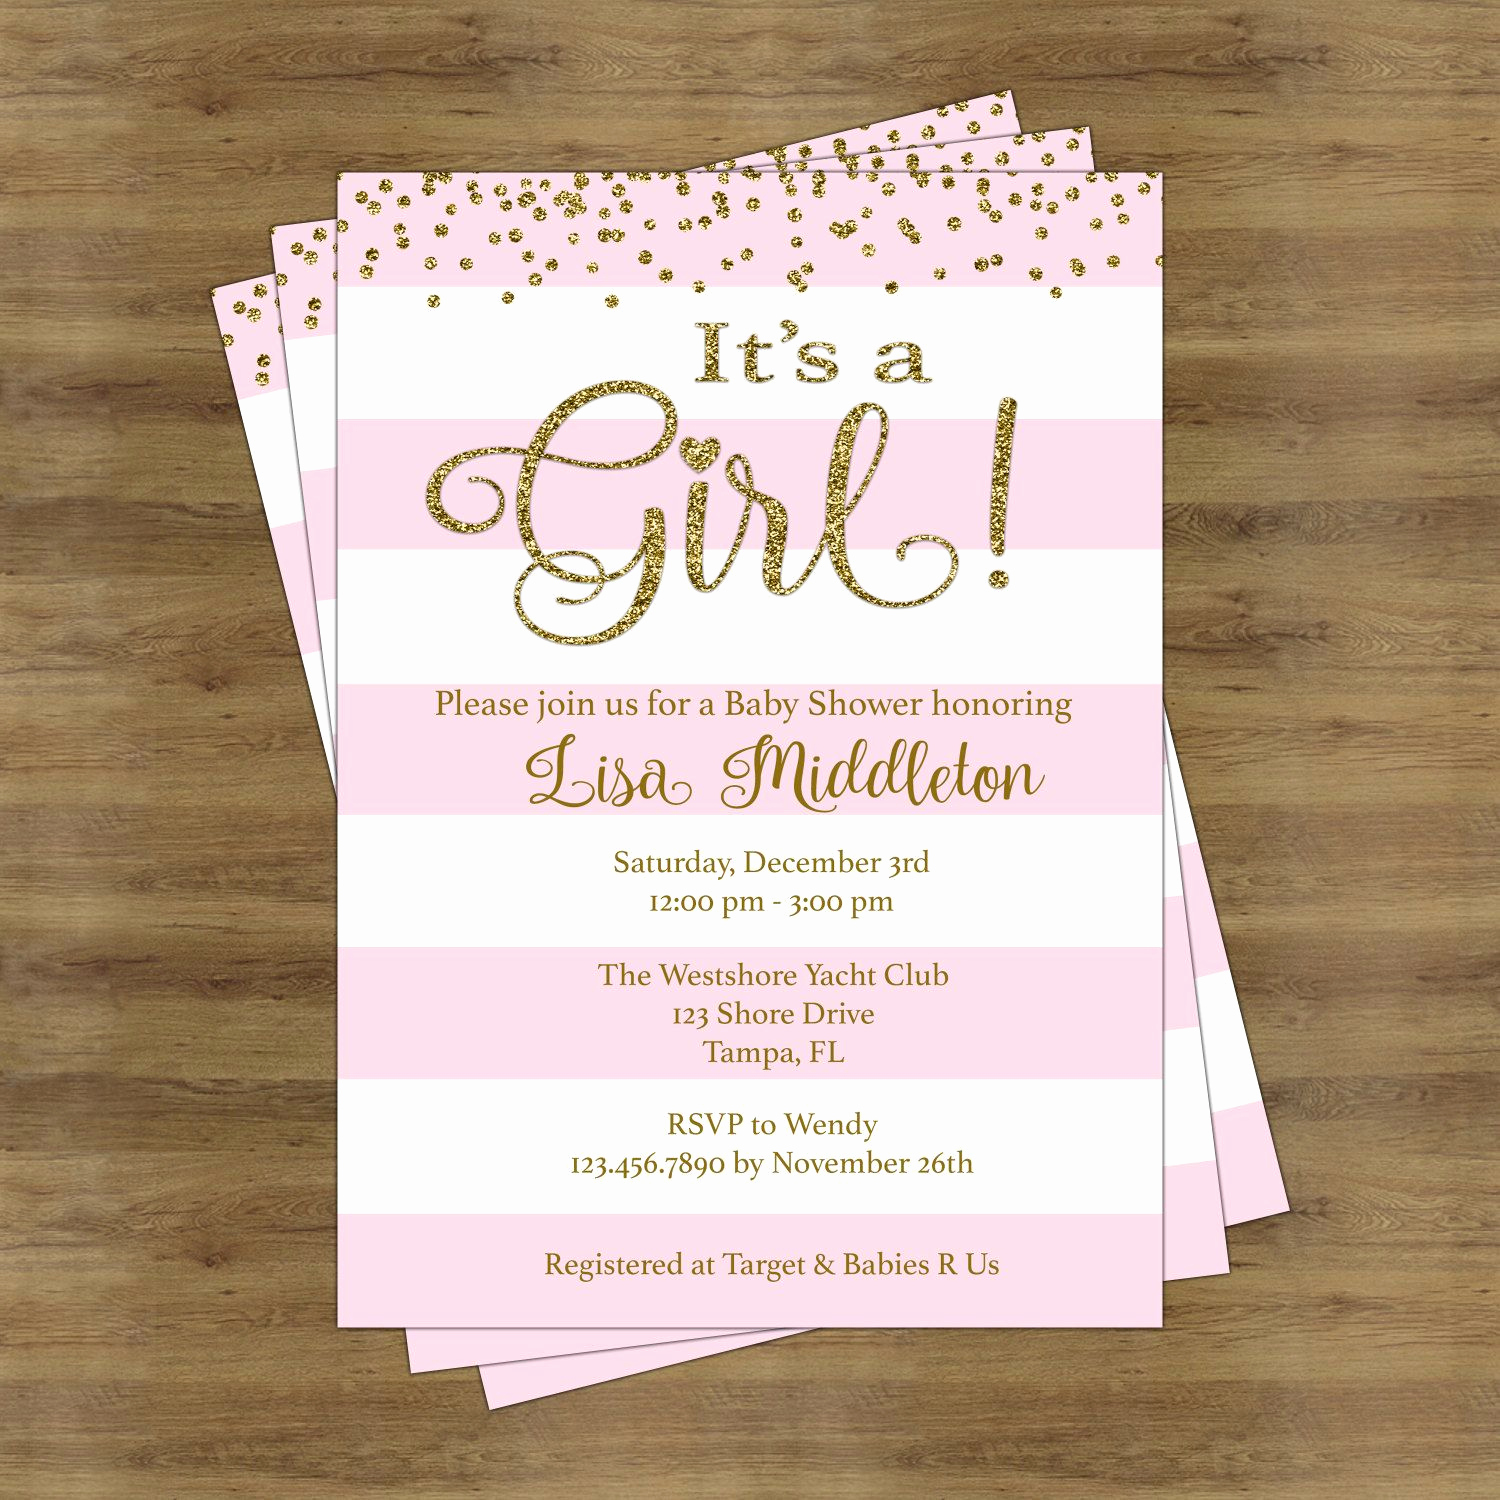 Baby Shower Invitation Ideas Girl Awesome Pink and Gold Baby Shower Invites Its A Girl Baby Shower